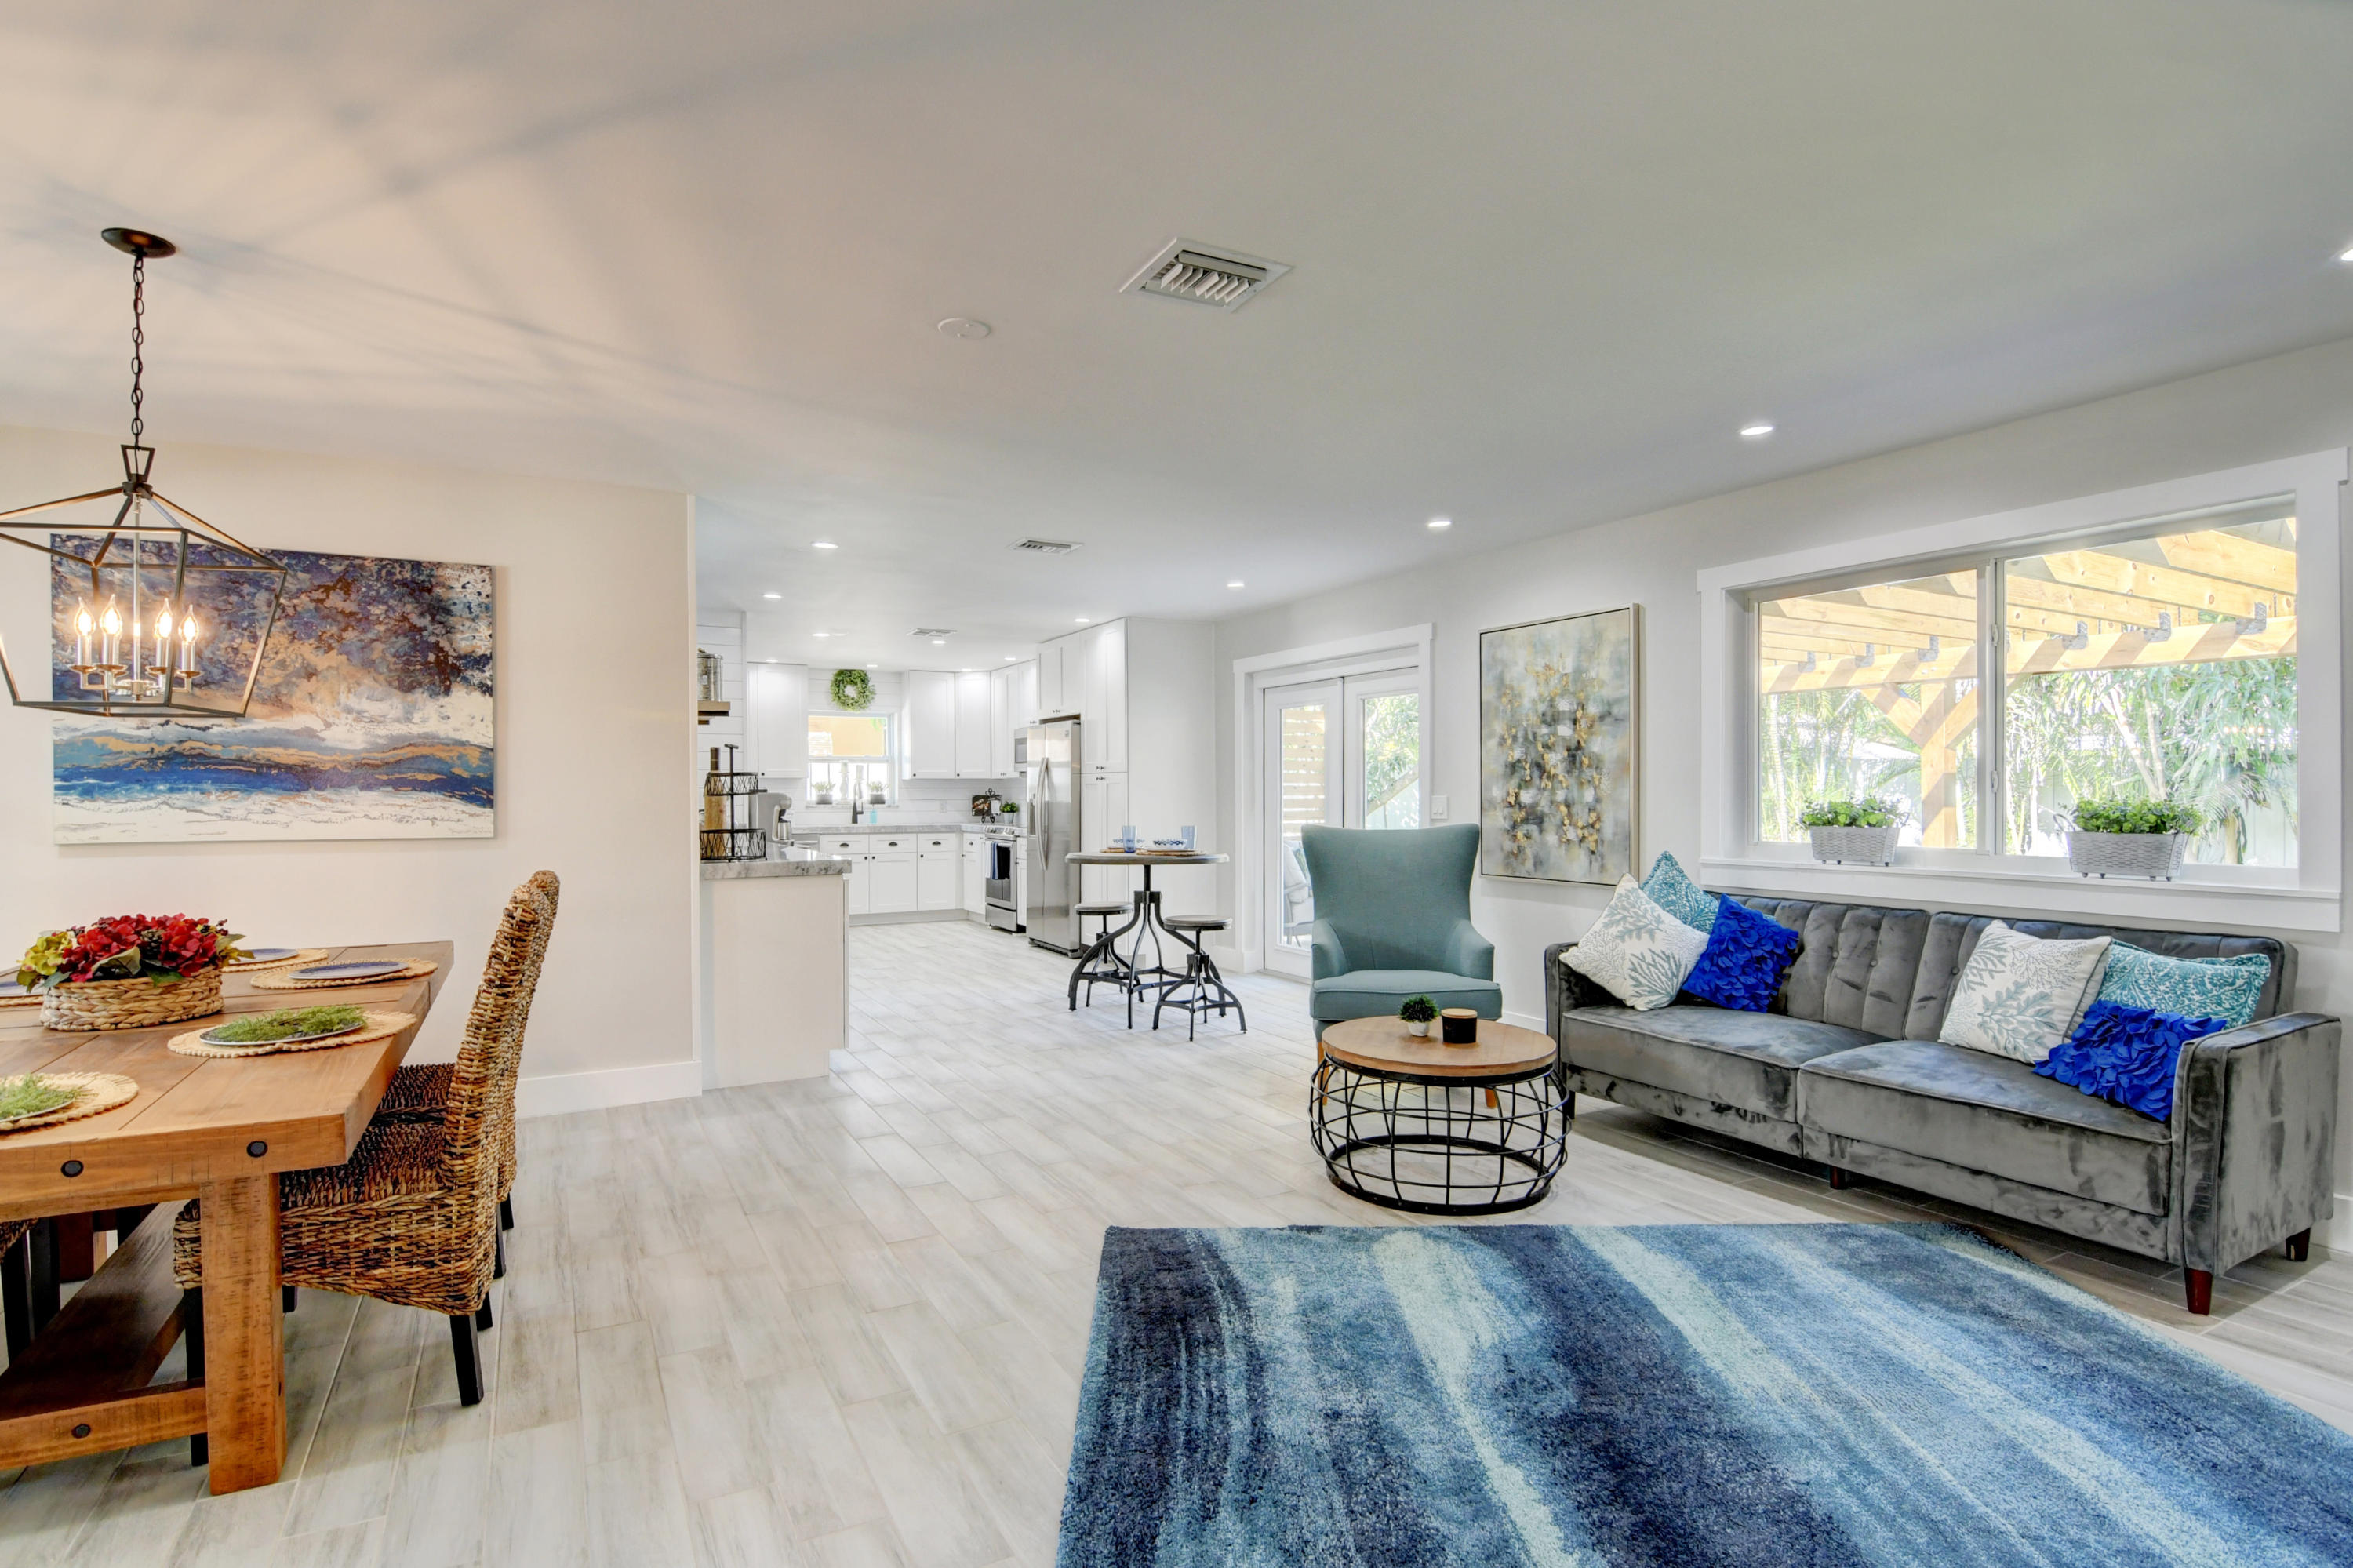 BEL-AIR LAUDERDALE BY THE SEA REAL ESTATE